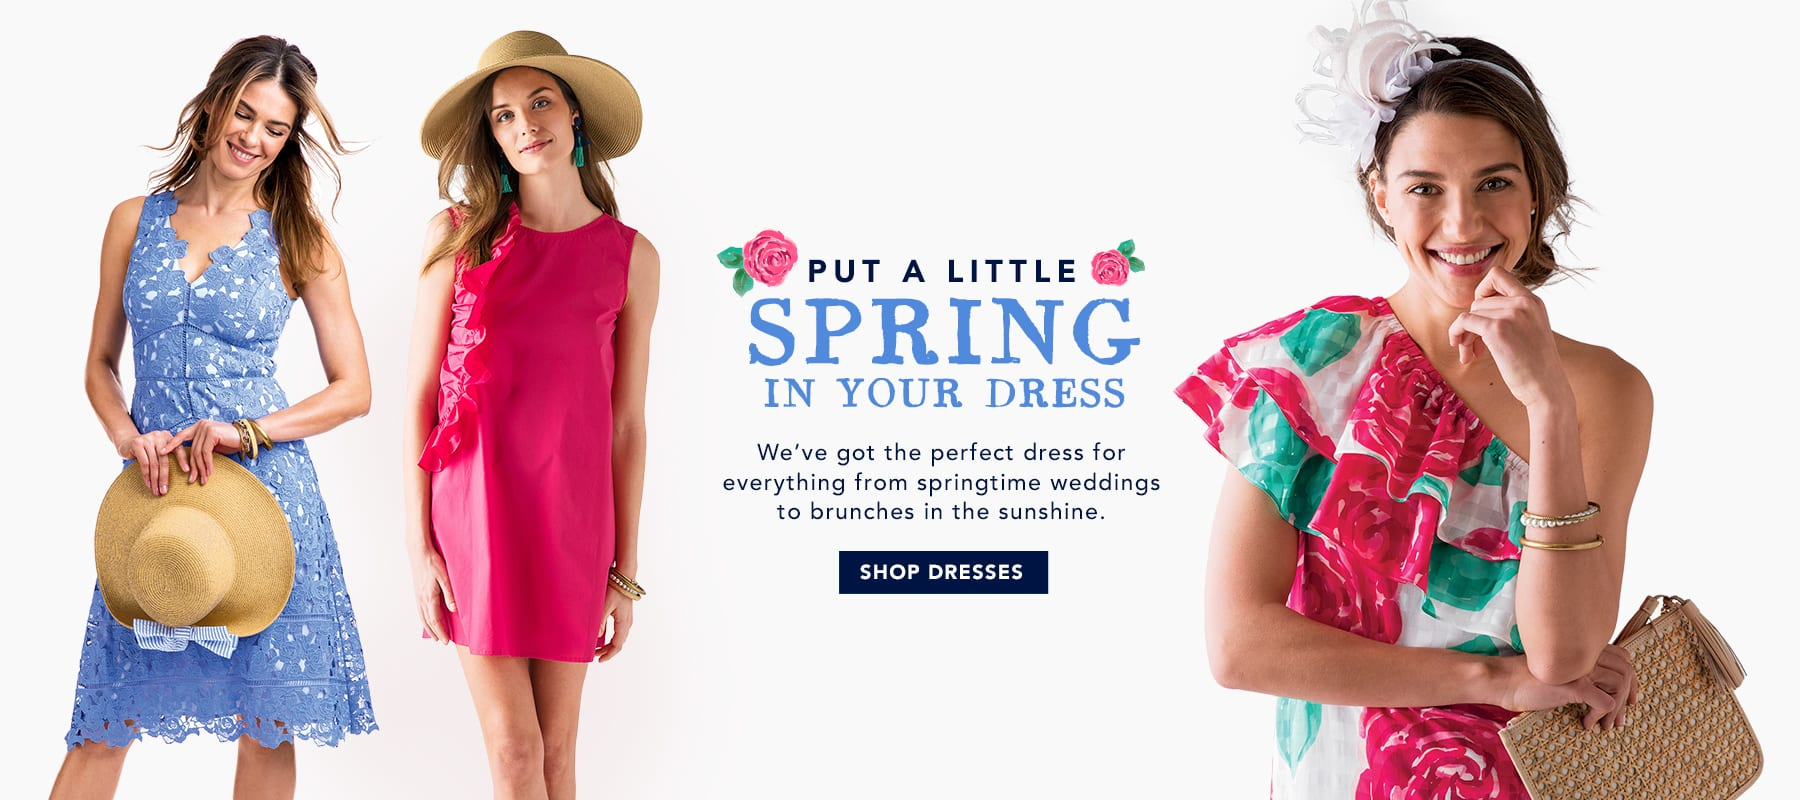 Put a little spring in your dress. Shop Women's Dresses.